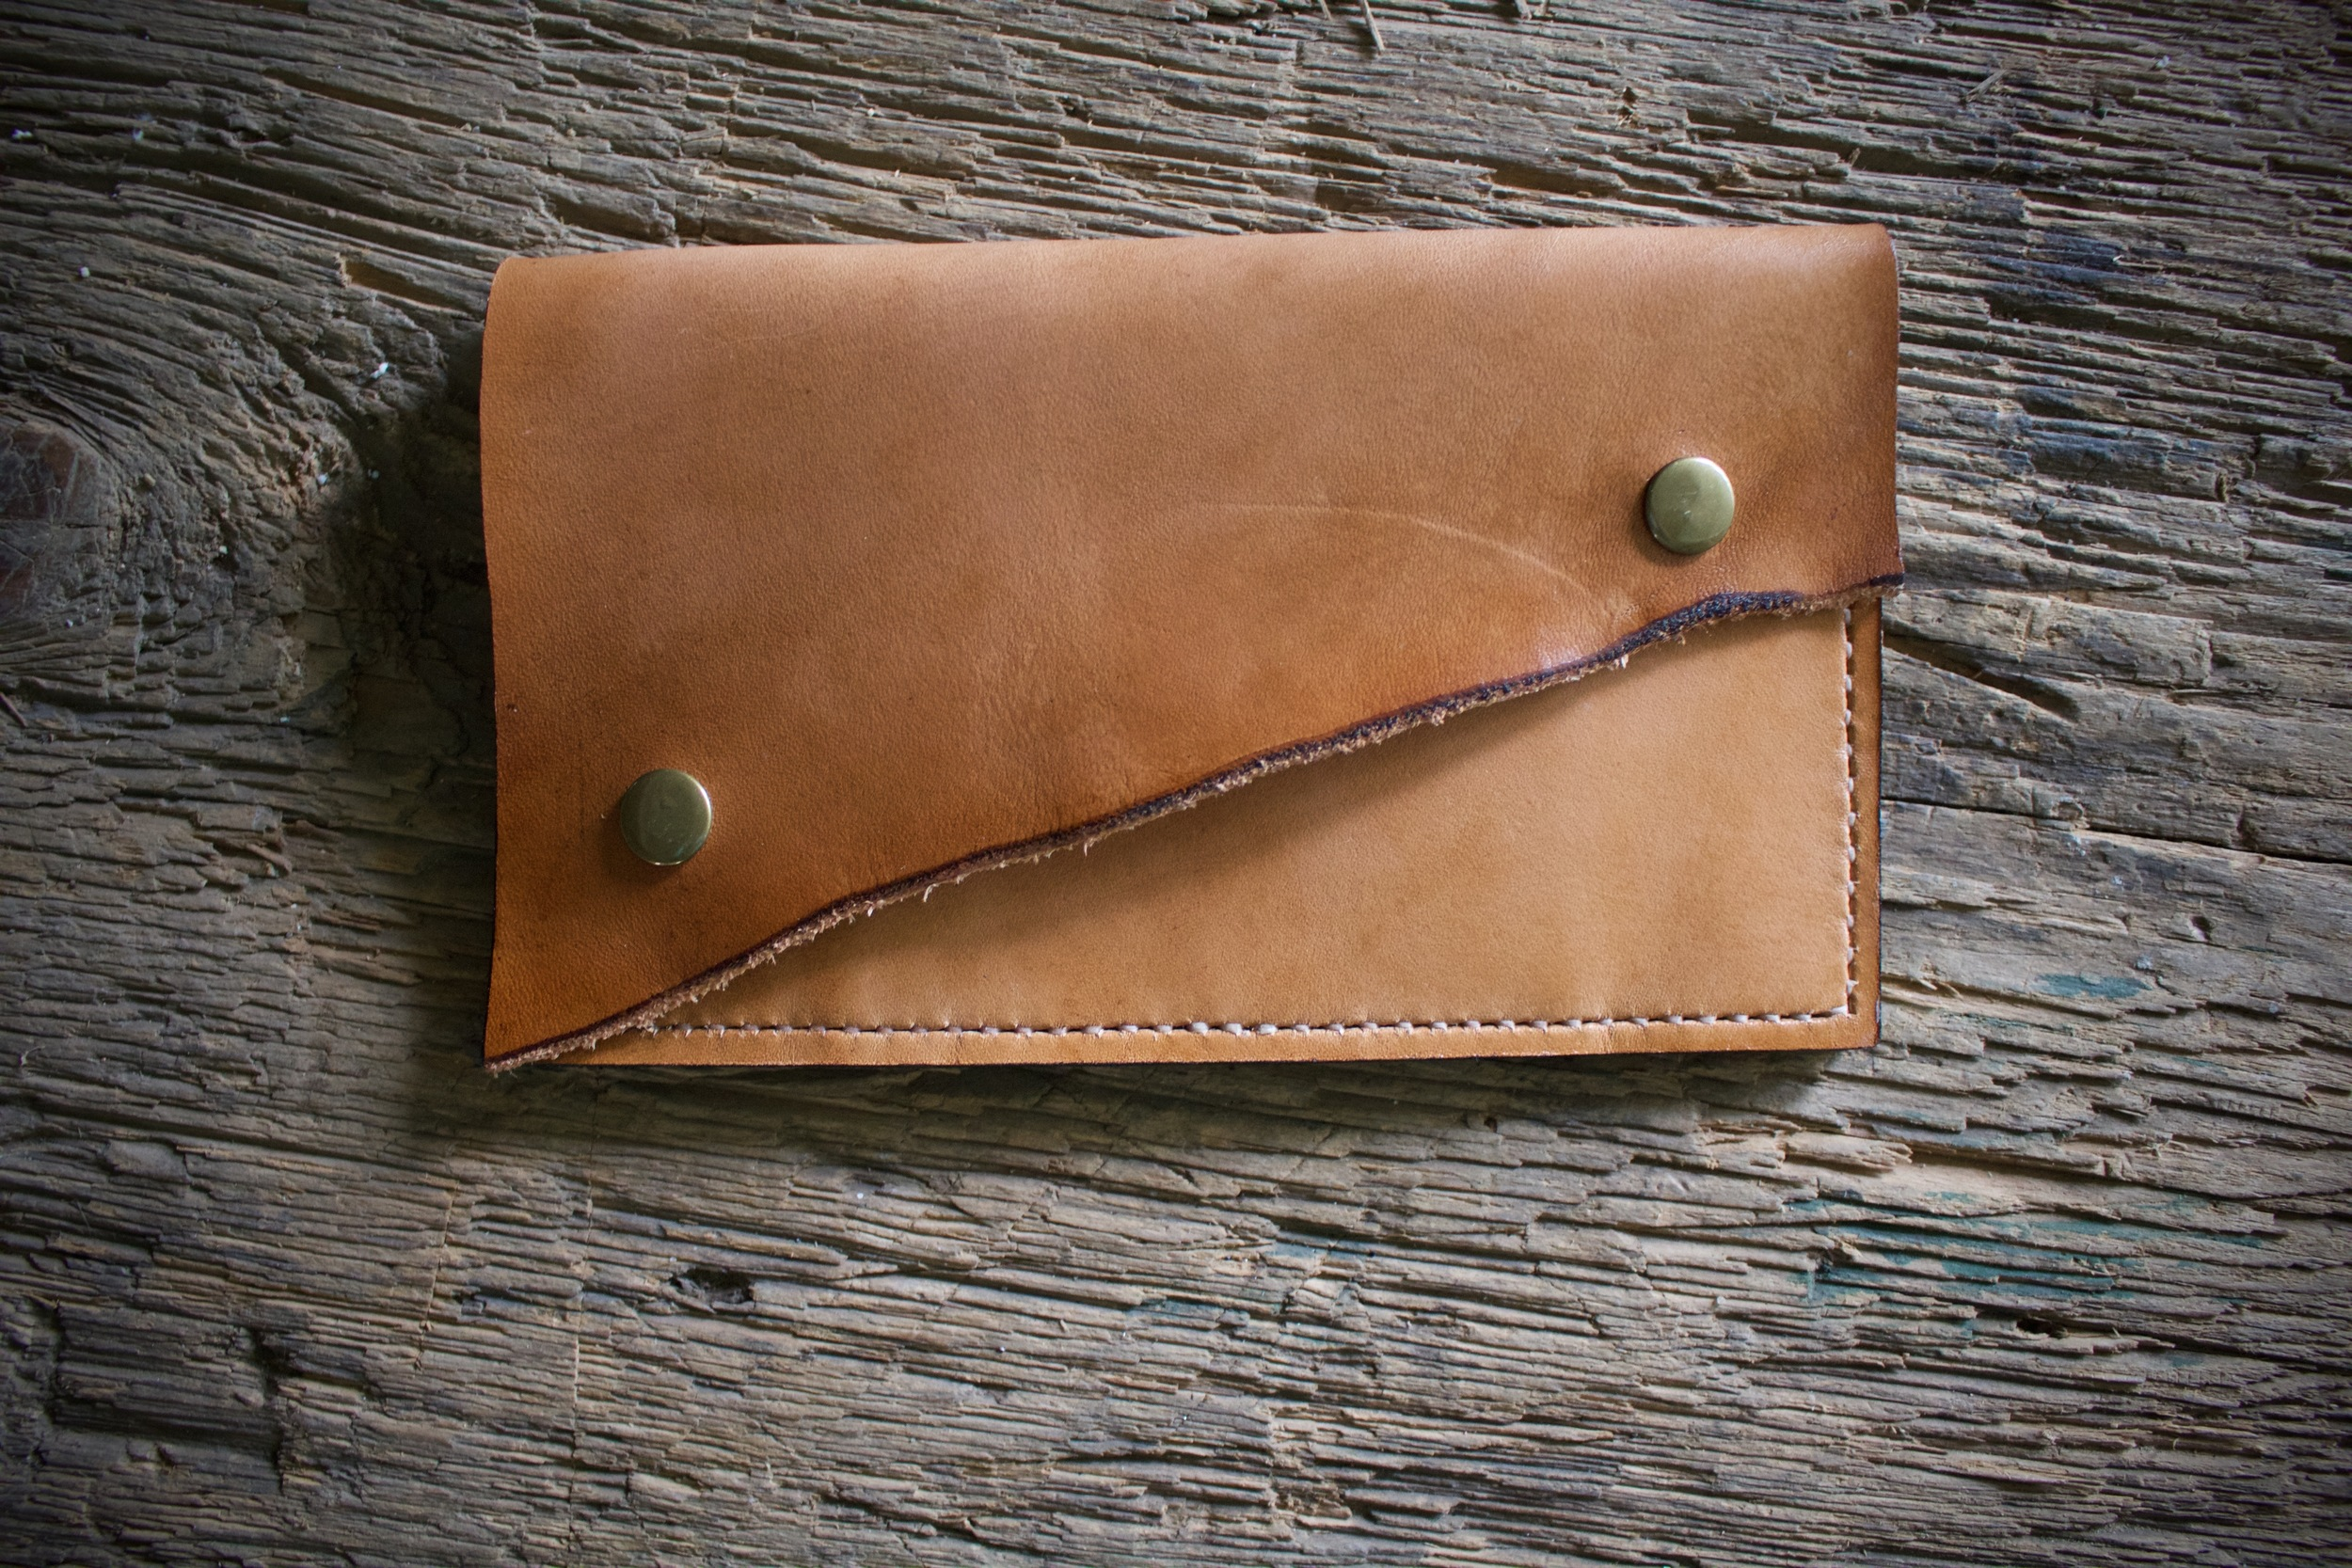 leather clutch wallet4.jpg